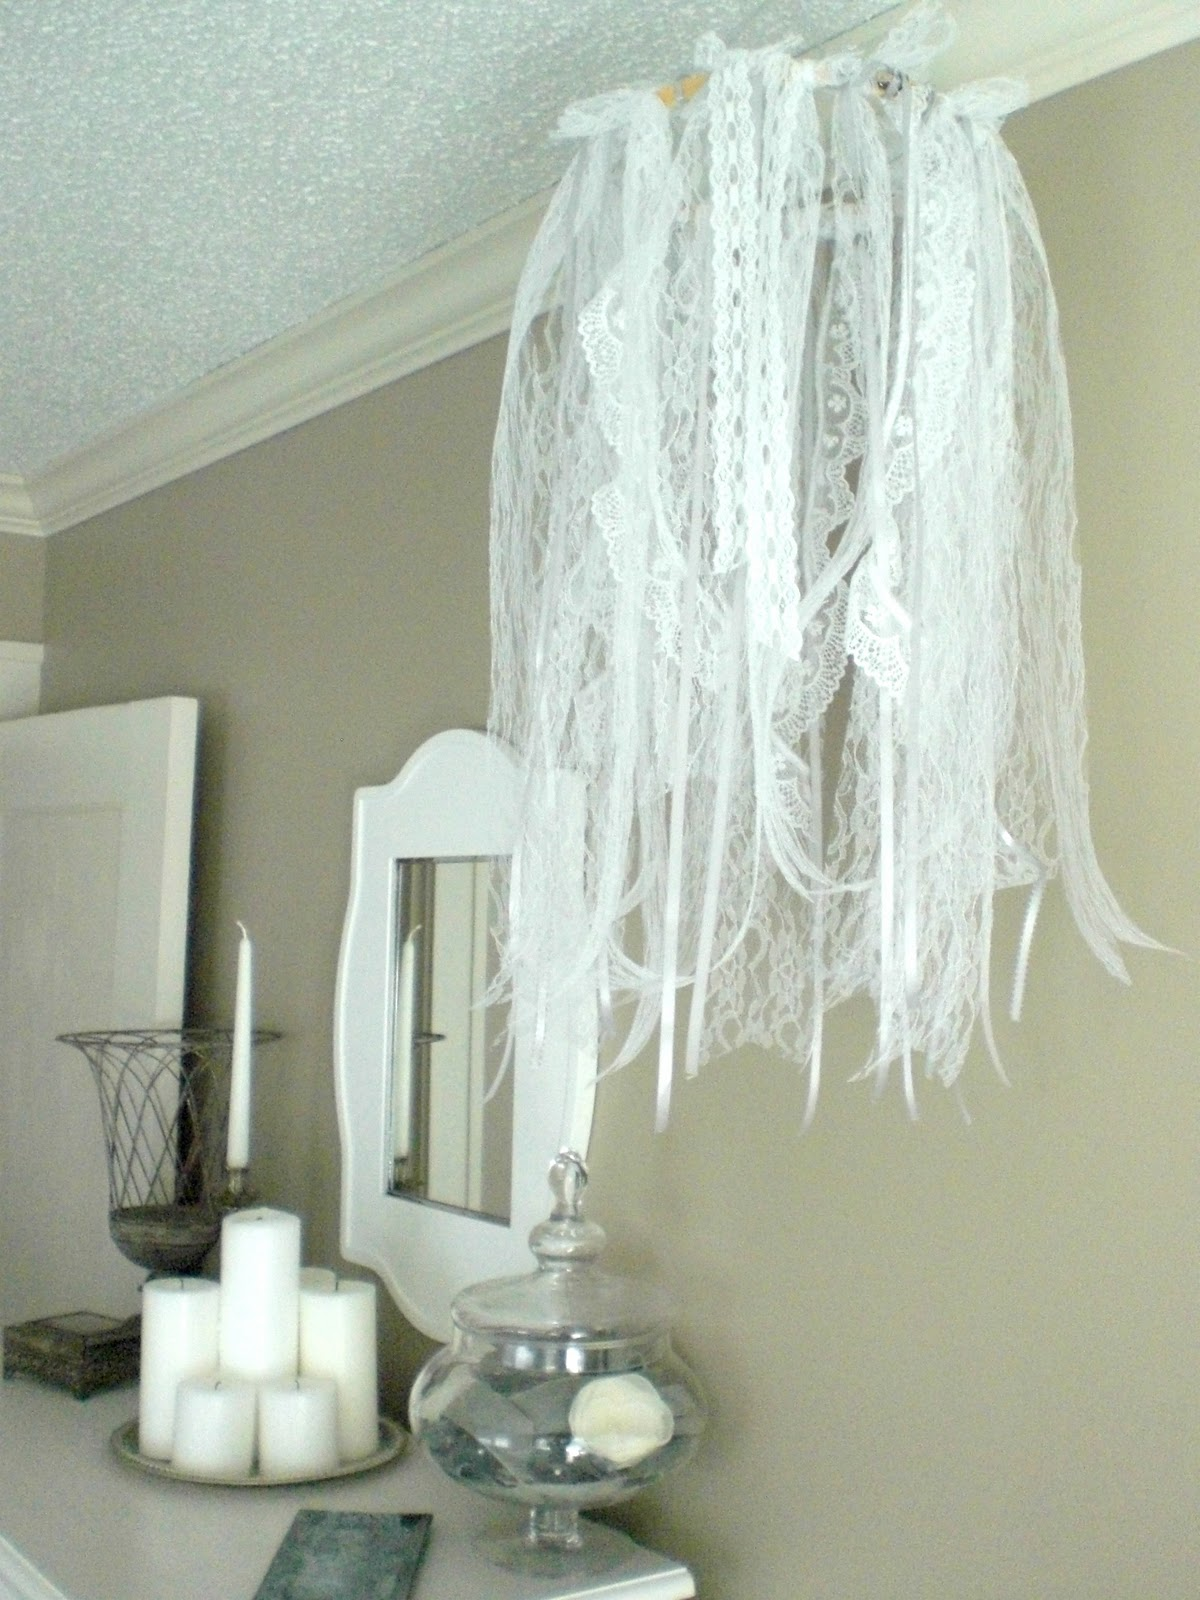 12th and white diy ribbon and lace chandelier diy ribbon and lace chandelier arubaitofo Choice Image